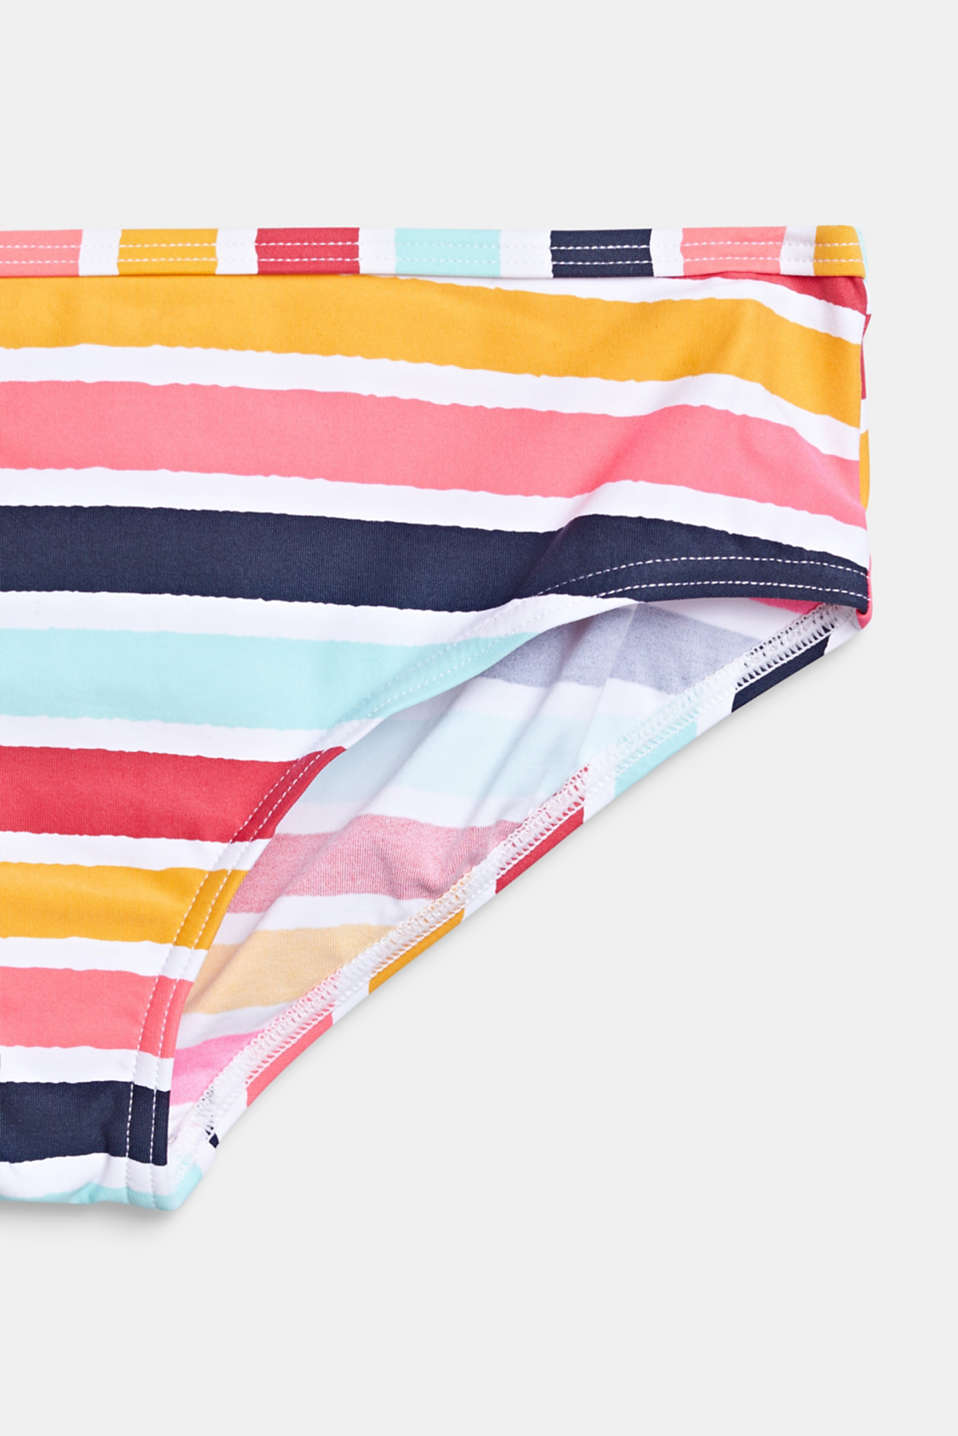 Crop top bikini set with multi-coloured stripes, SUNFLOWER YELLOW, detail image number 2